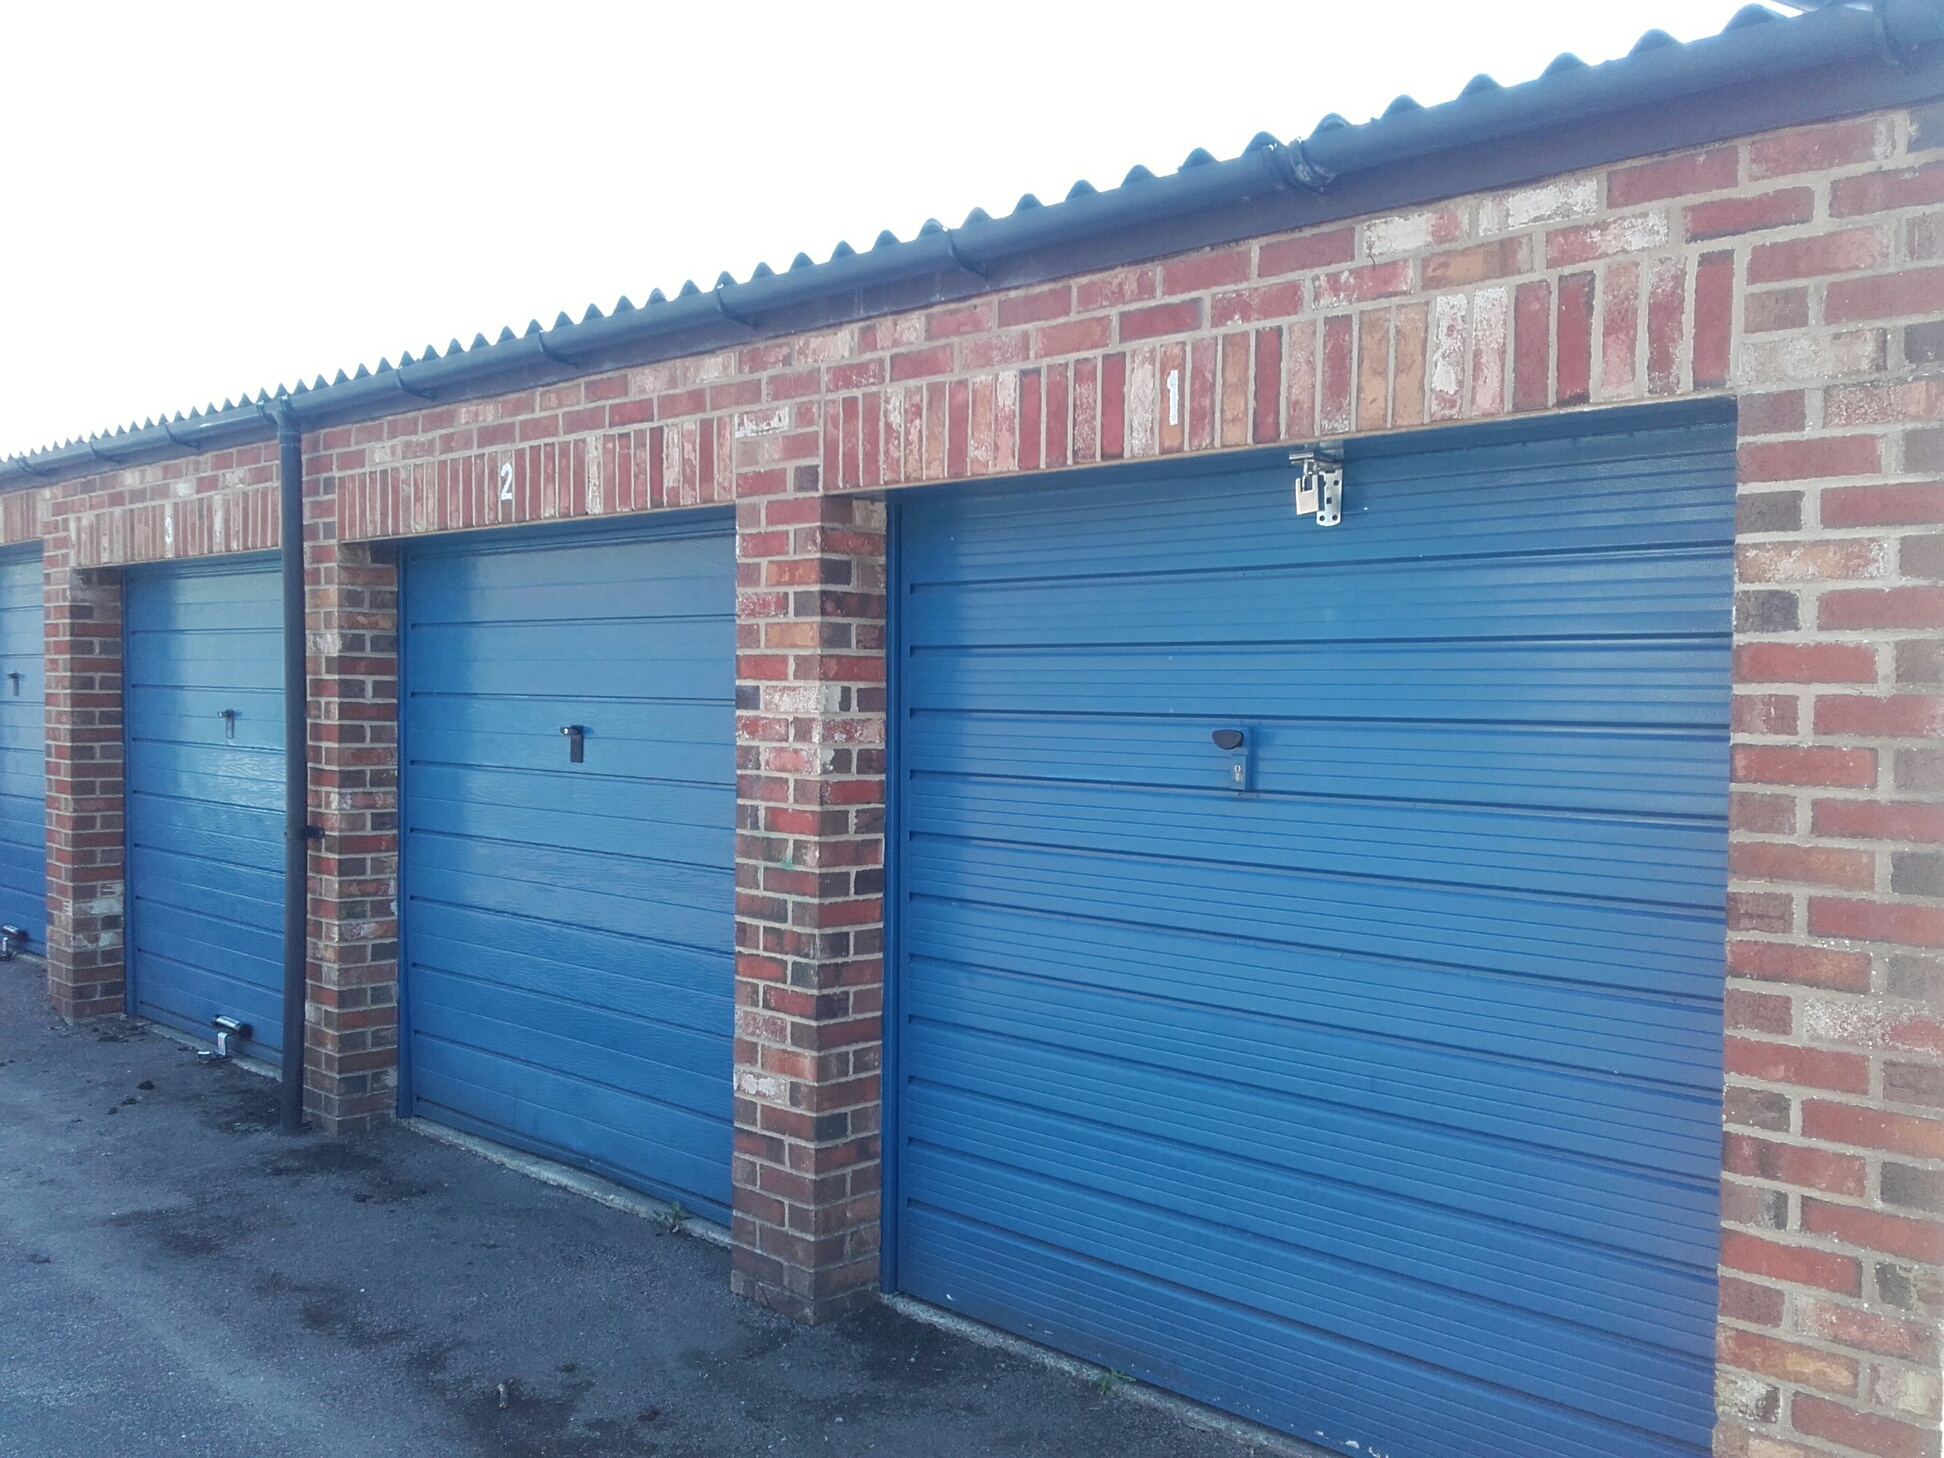 p to for storage parking spacious in double garage easy rent ideal